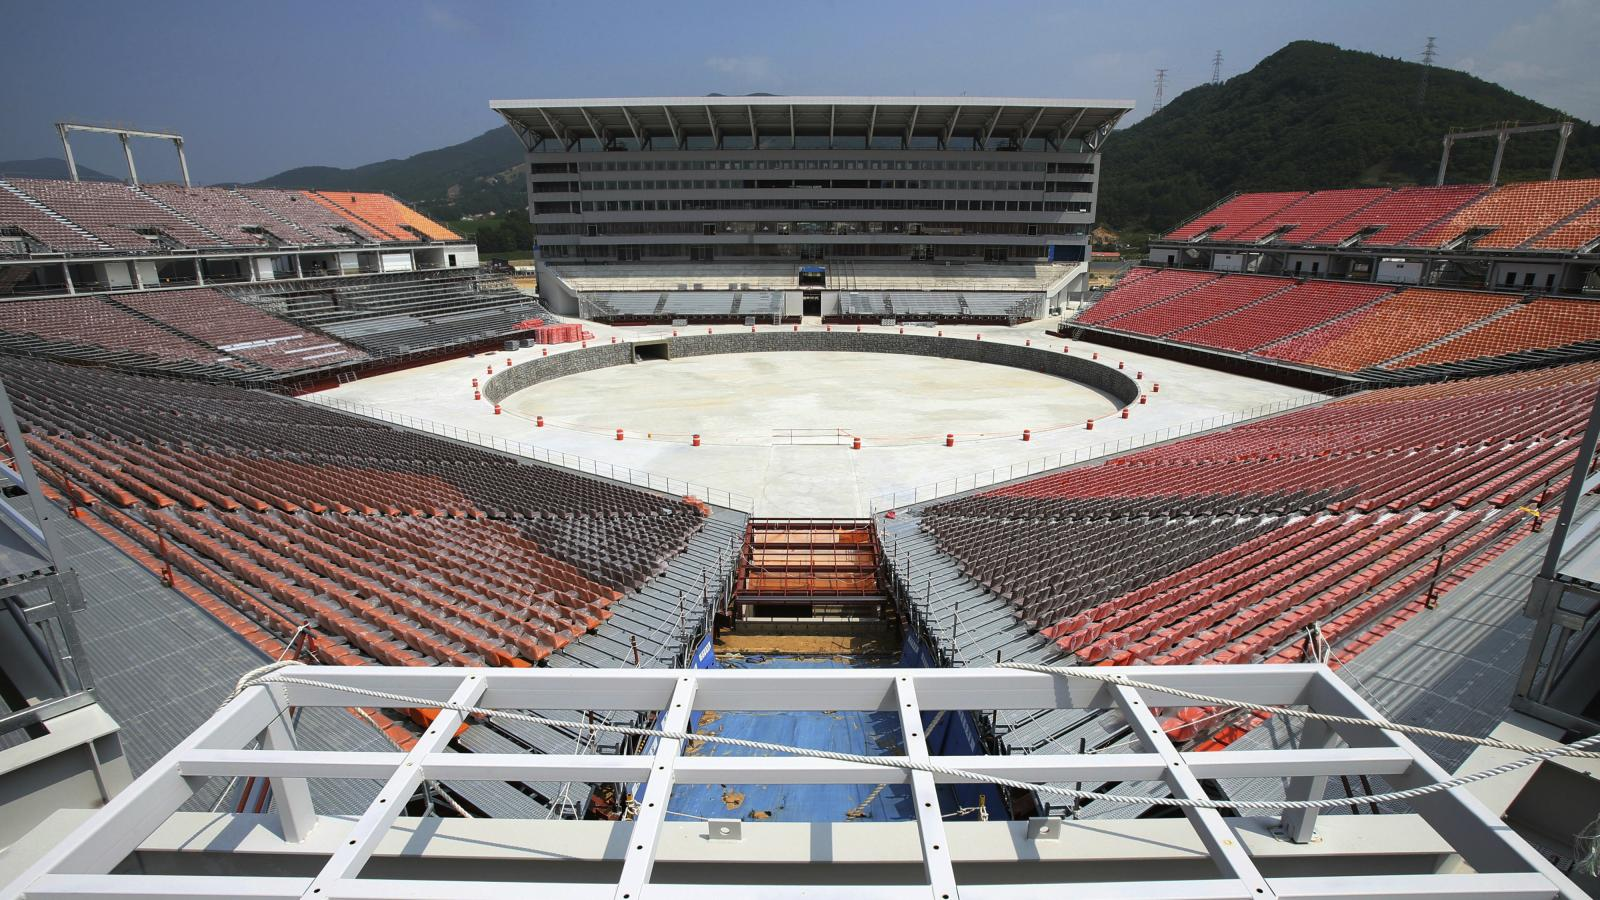 hight resolution of winter olympics 2018 south korea s 100 million pyeongchang stadium will be used four times quartz